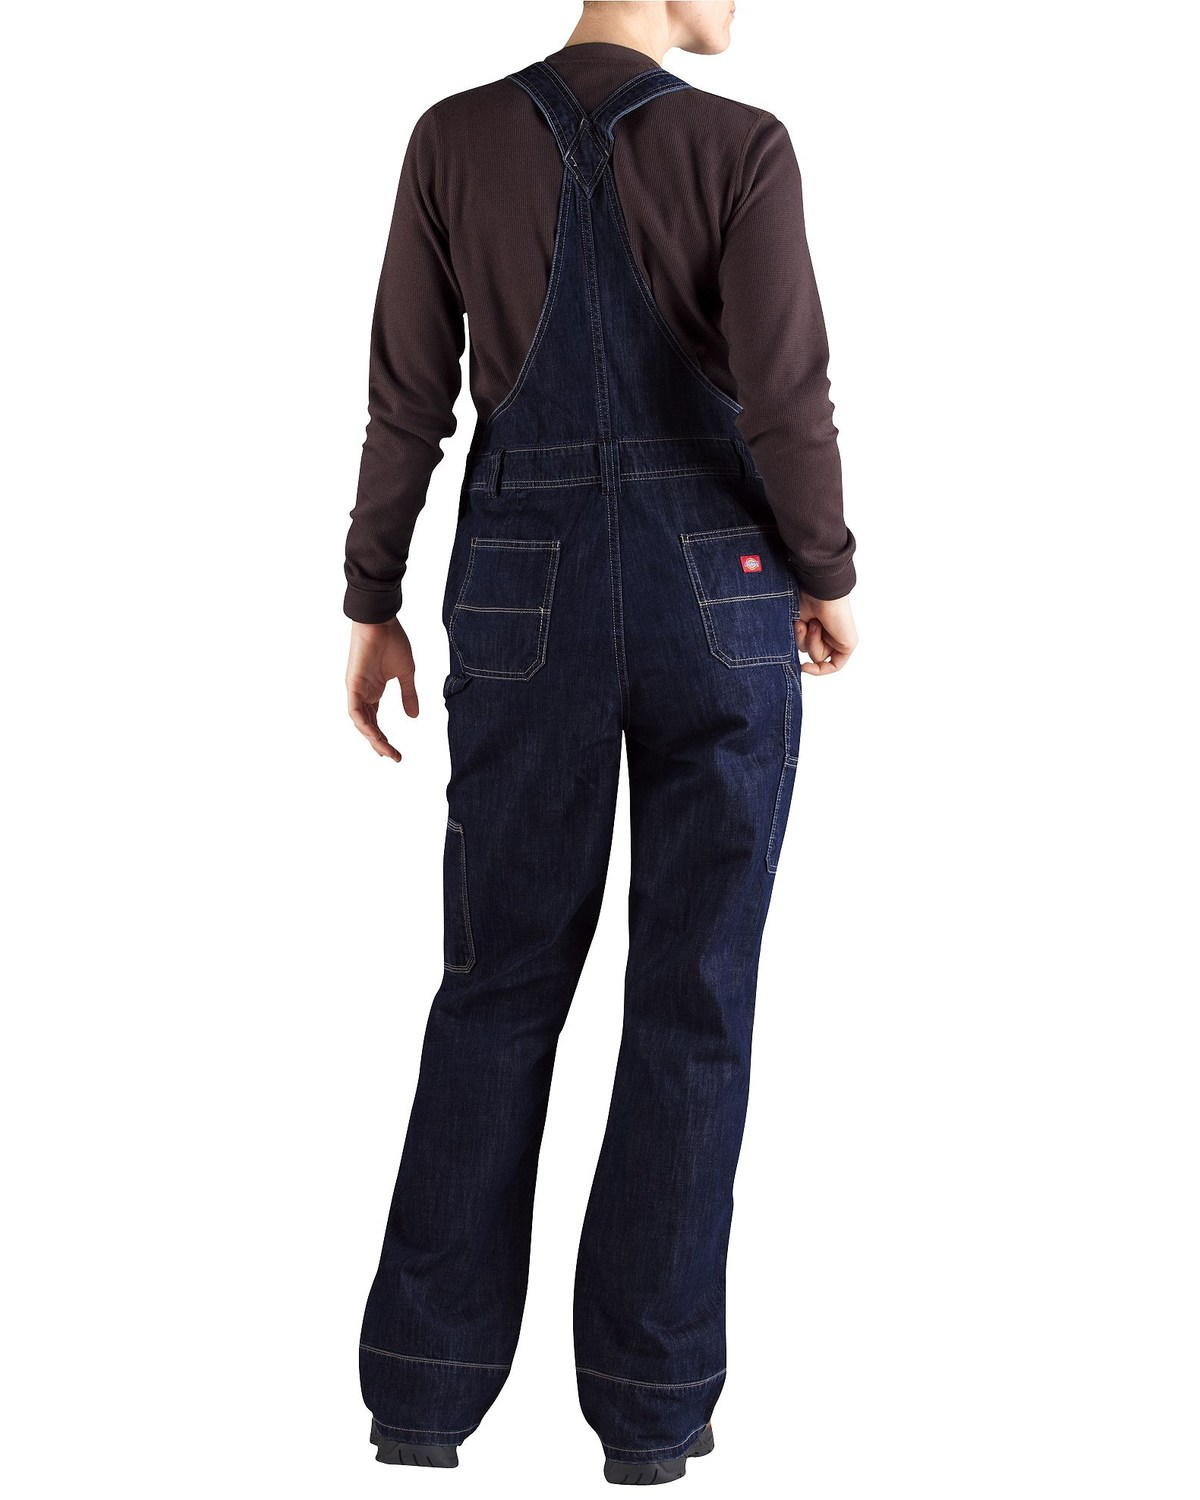 43d0a11f8295 Dickies Overalls For Sale Related Keywords   Suggestions - Dickies ...